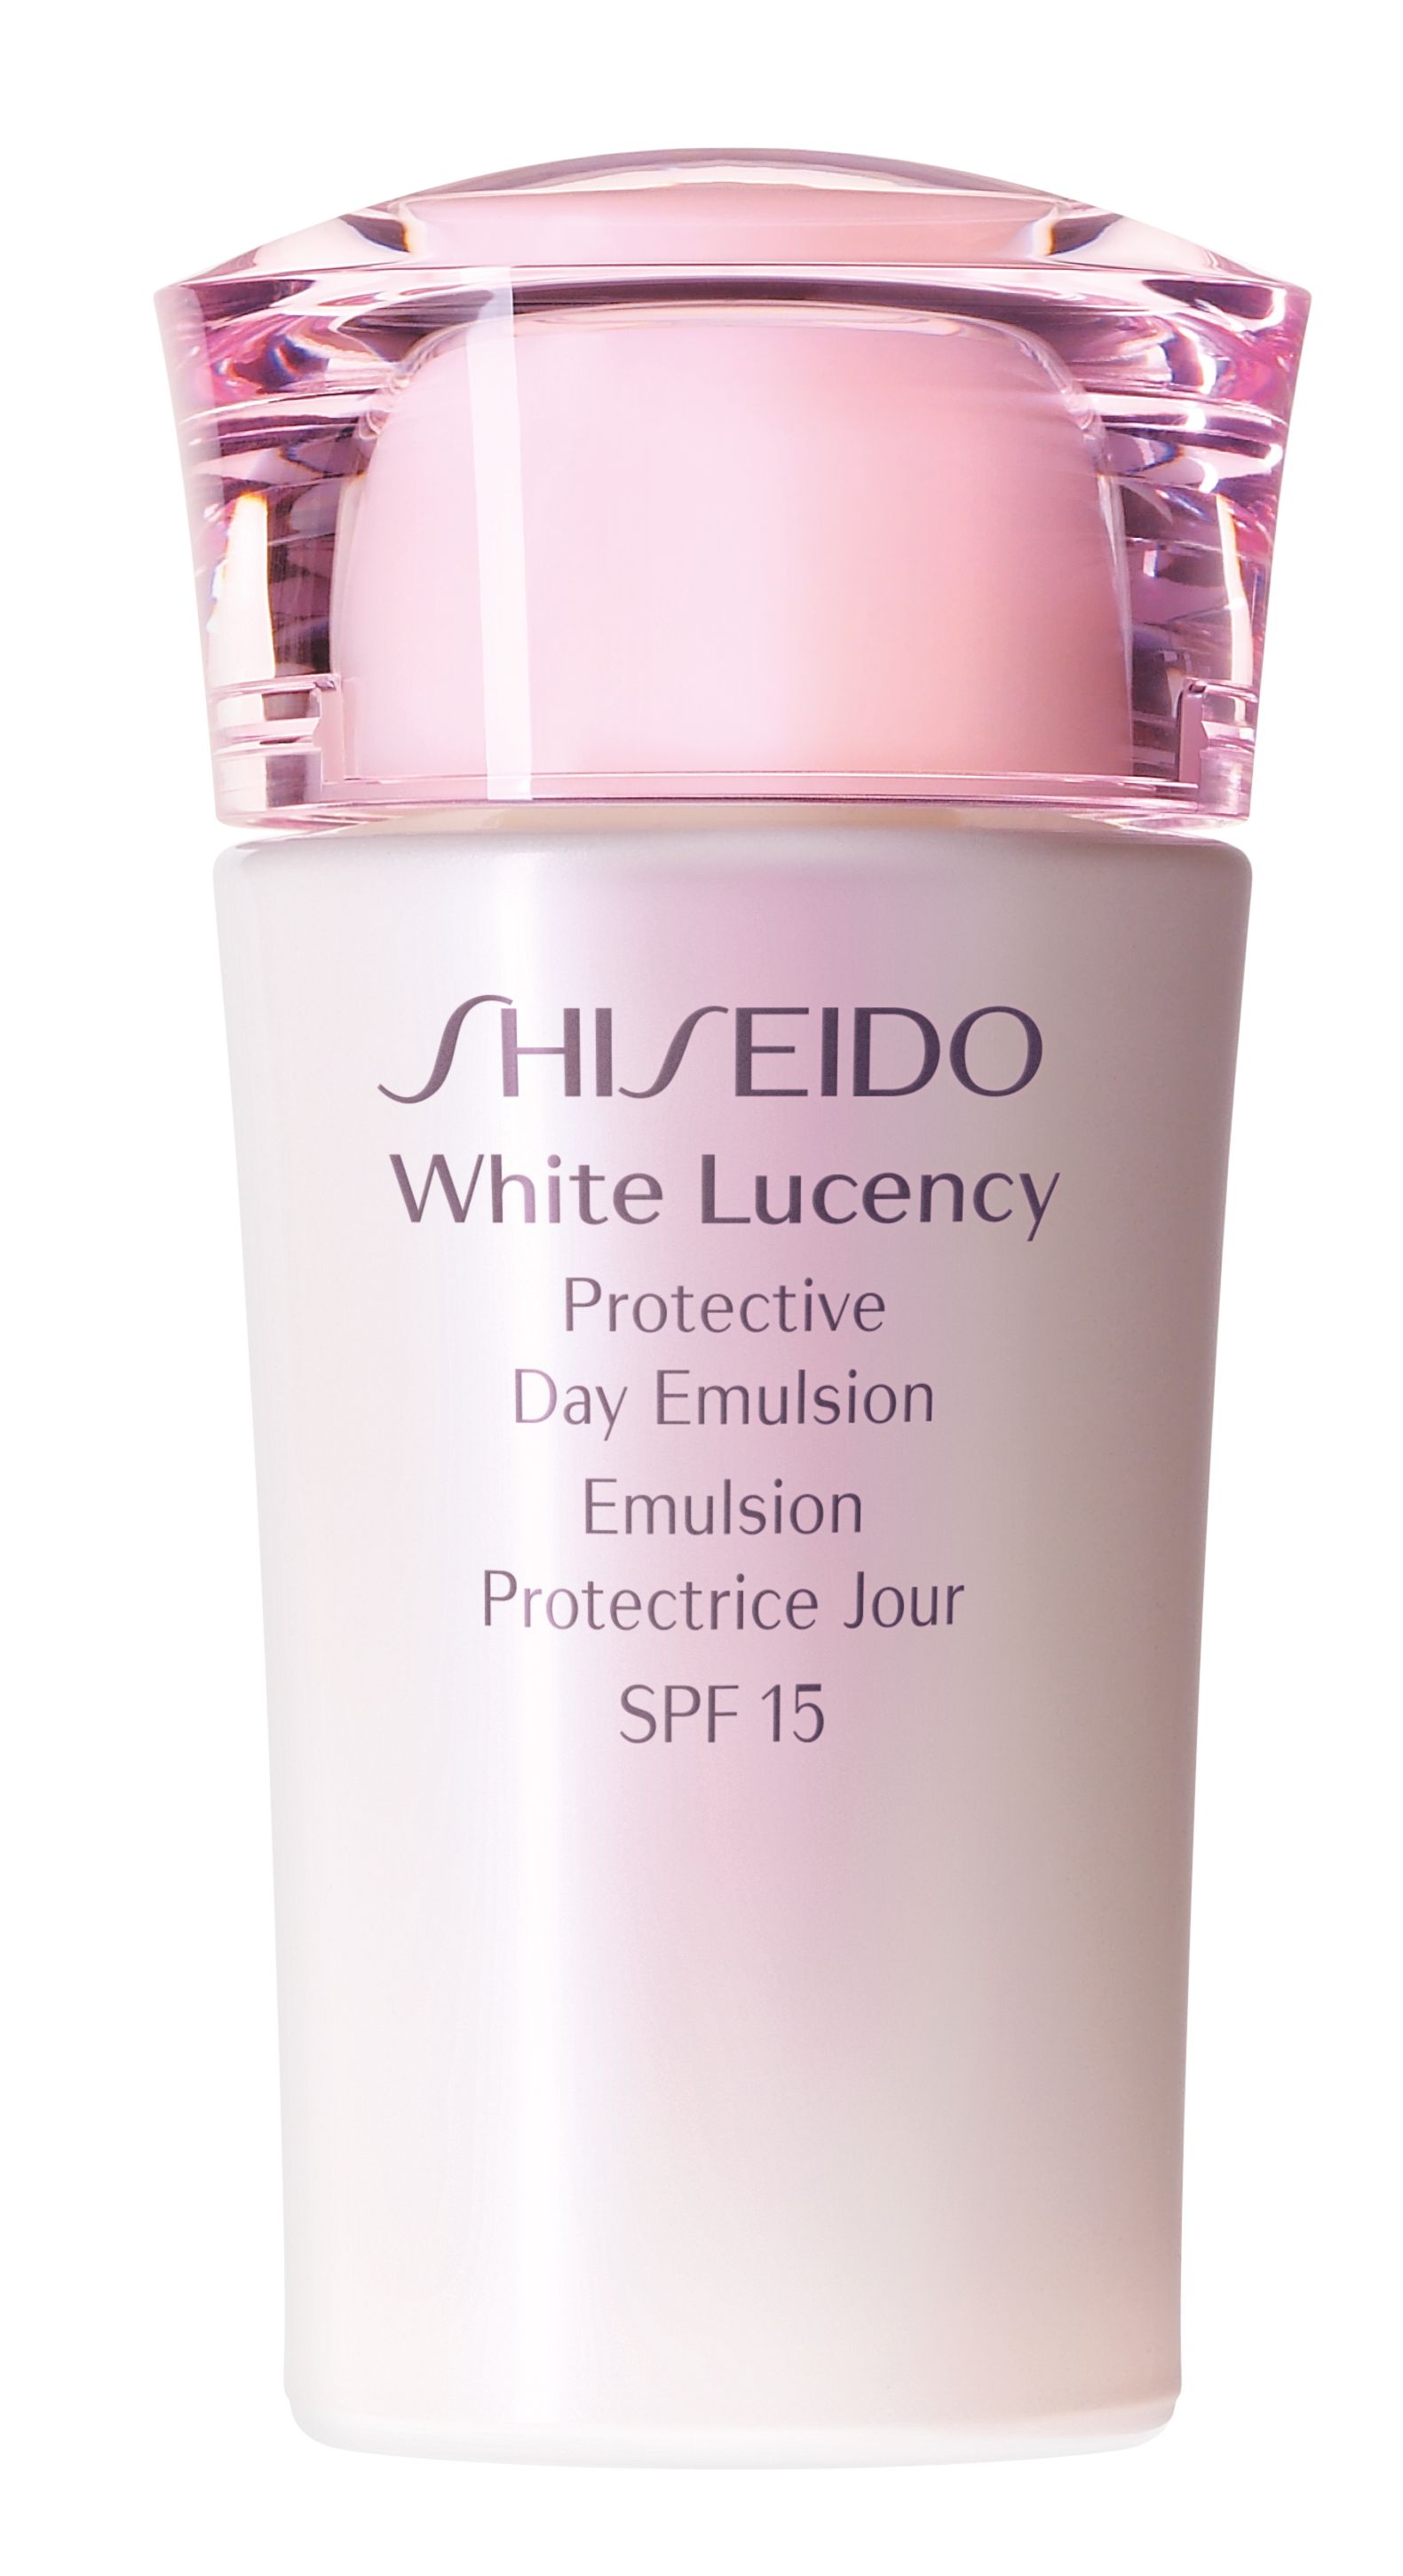 White Lucency Protective Day Emulsion SPF15 75ml